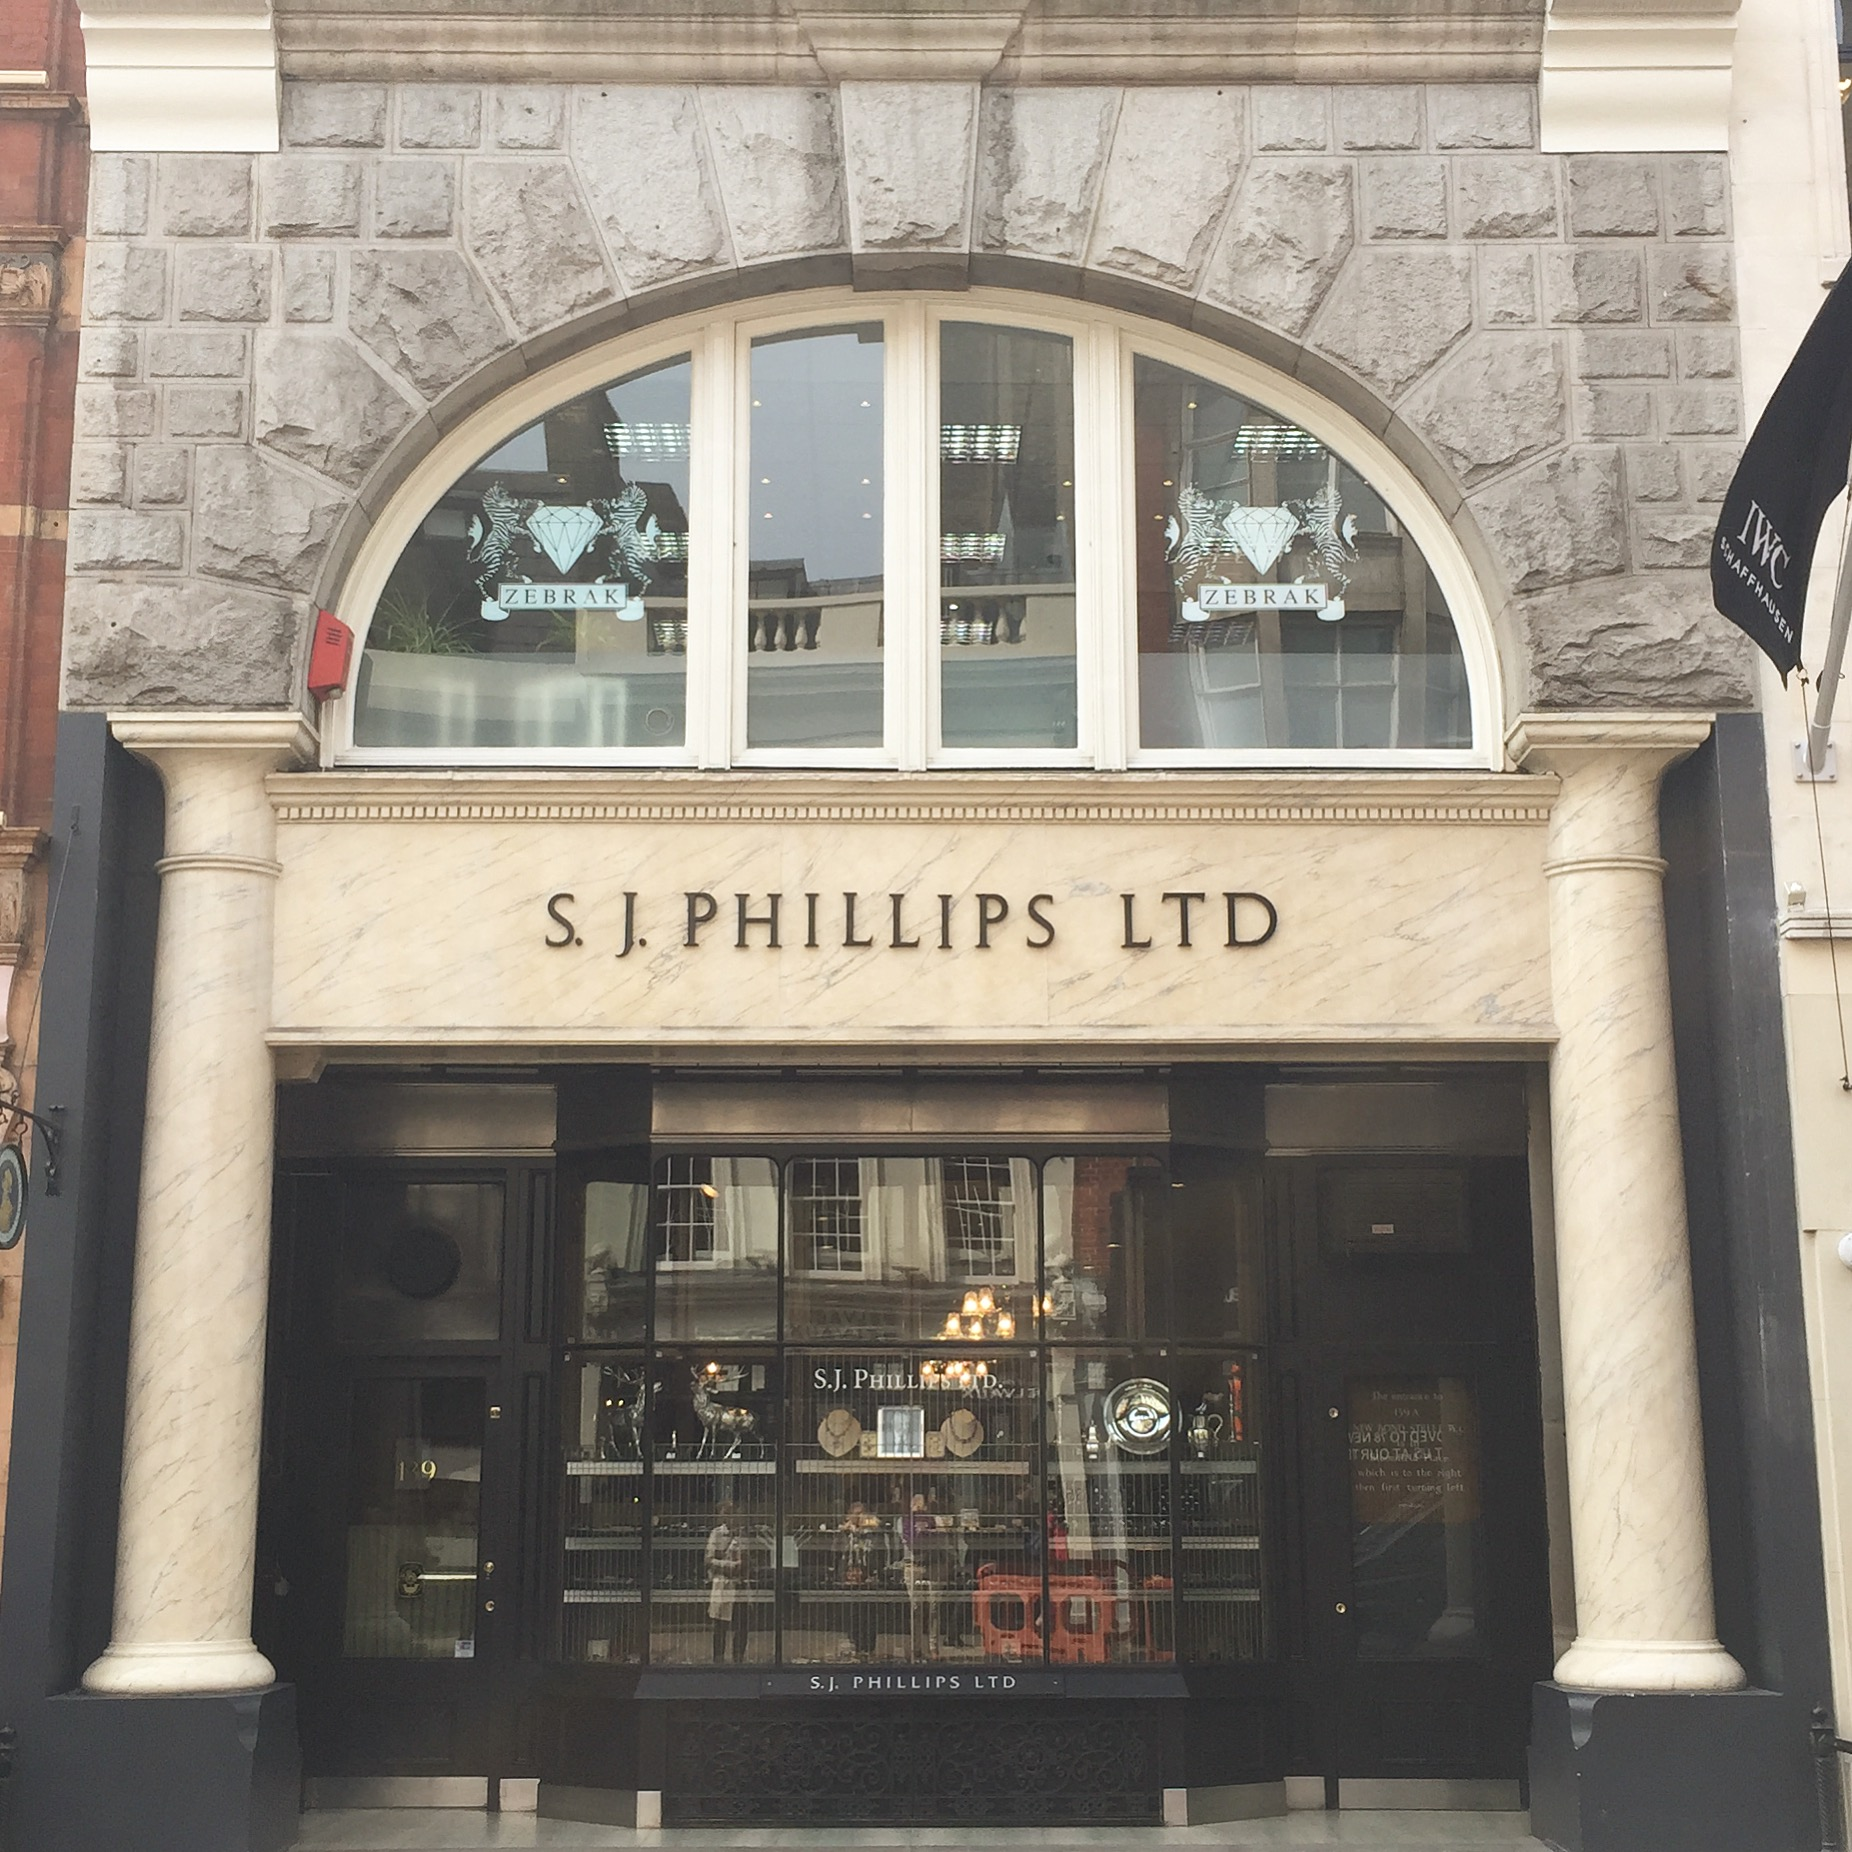 The untold delights of S.J.Phillips... making peopledrool since 1869!